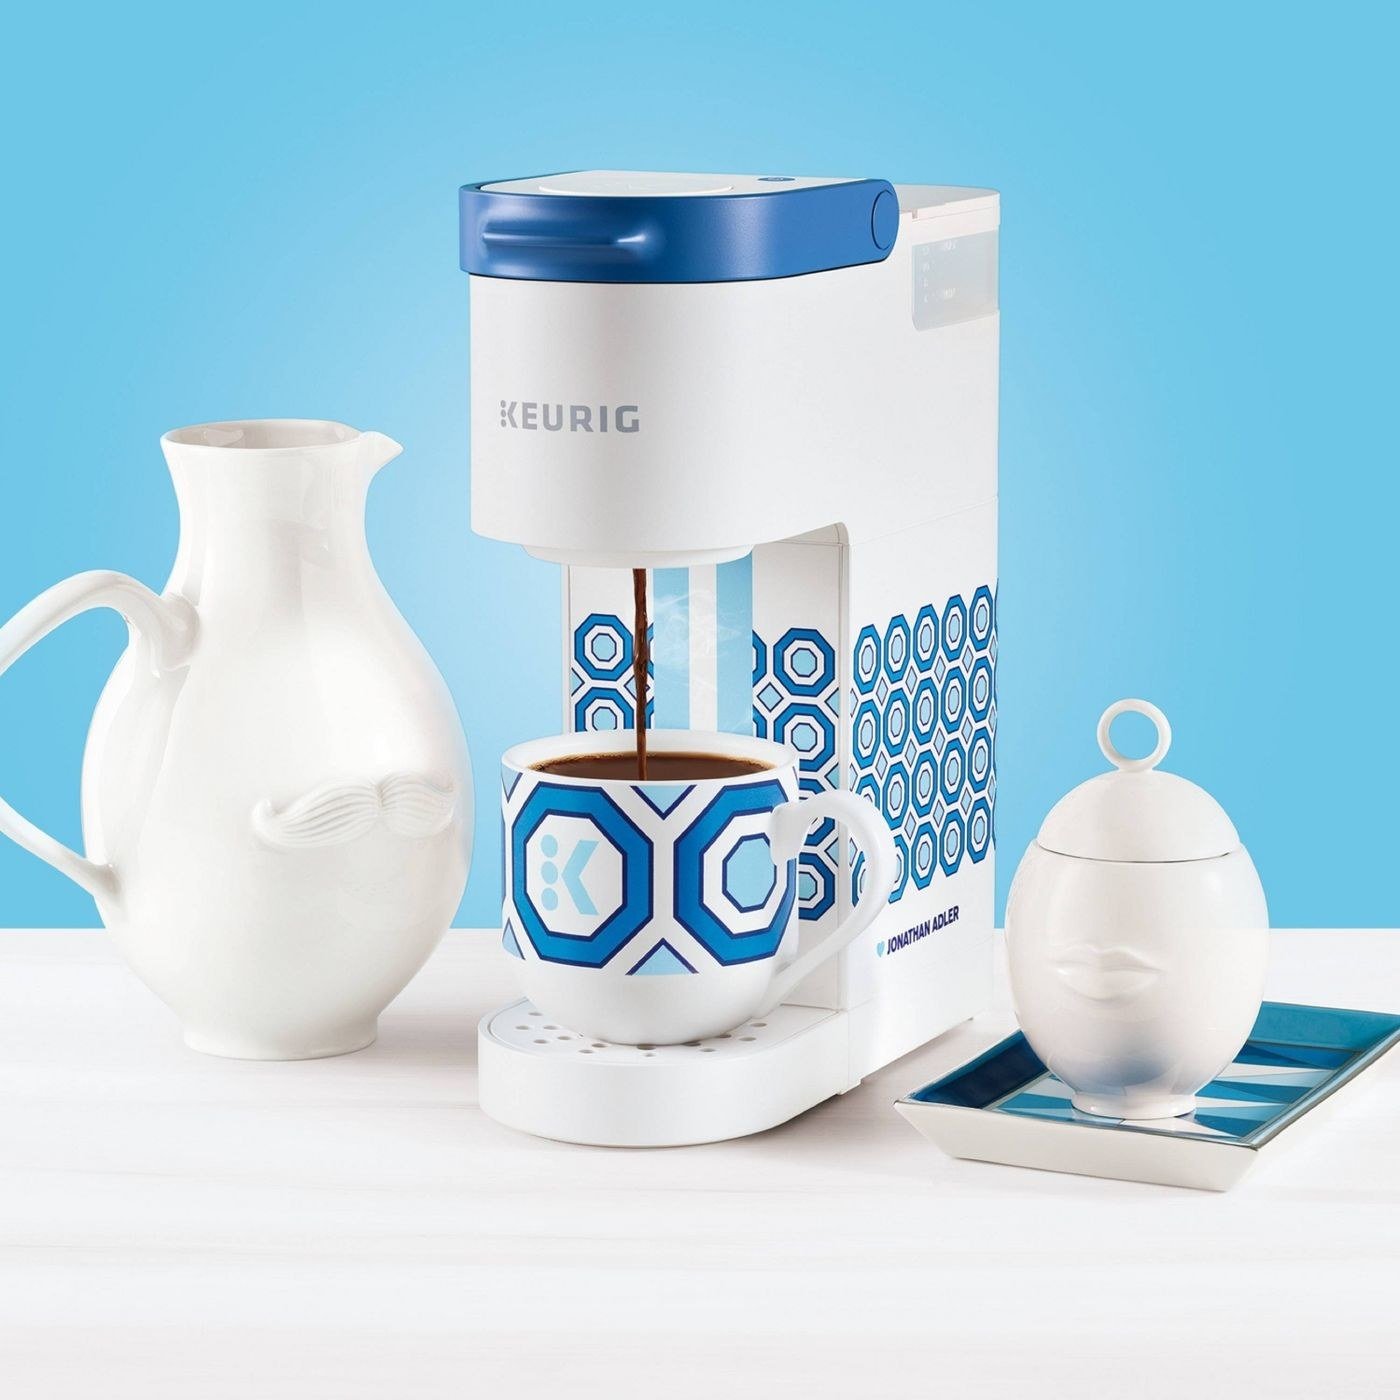 the blue and white tile print coffee maker